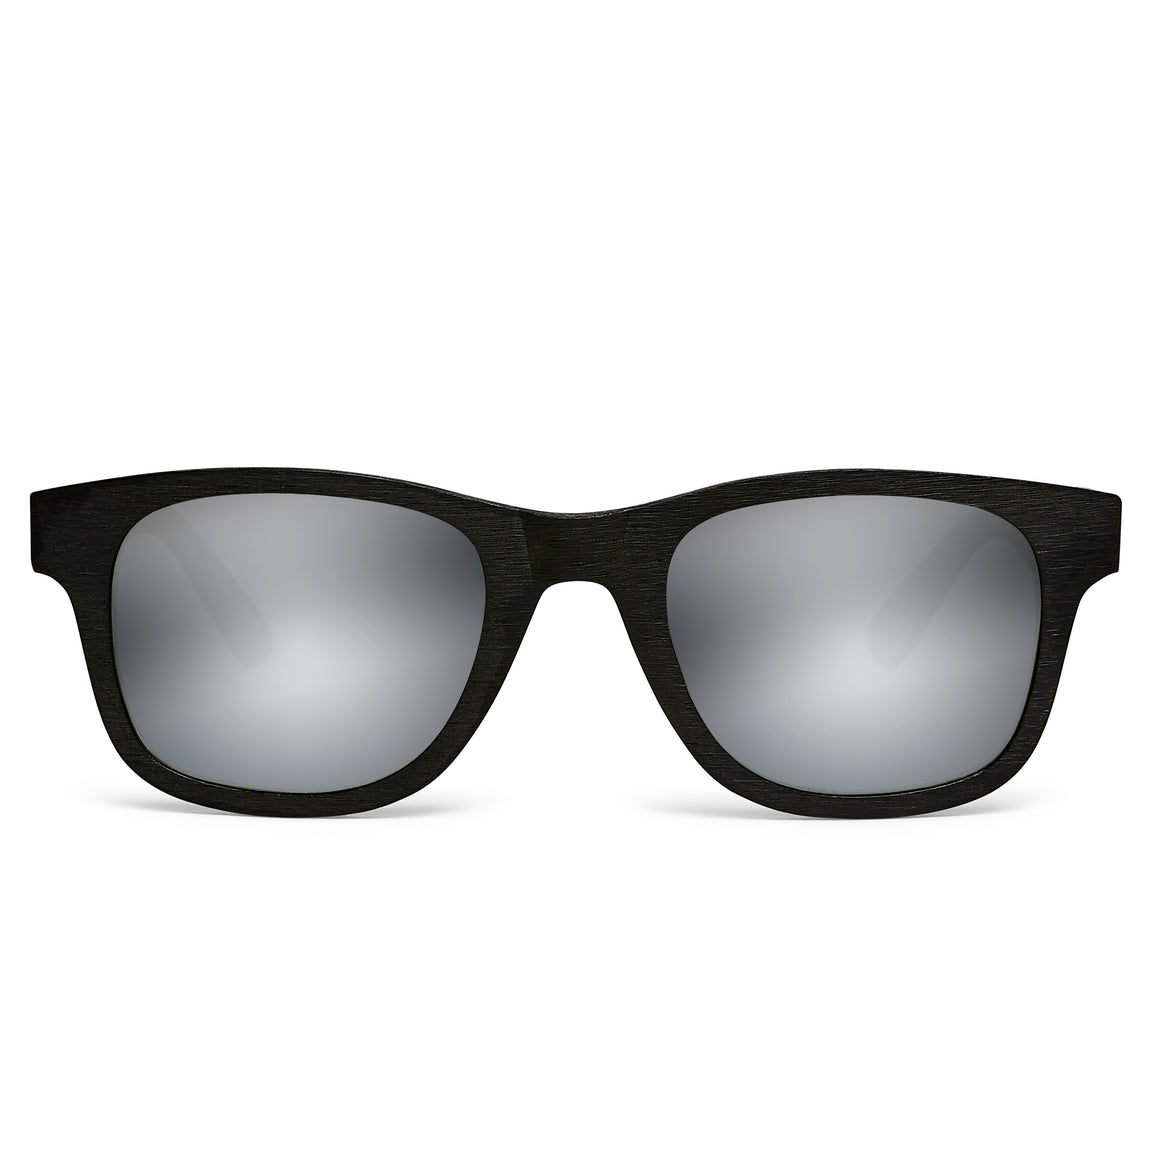 TRITON Silver Mirror Polarized